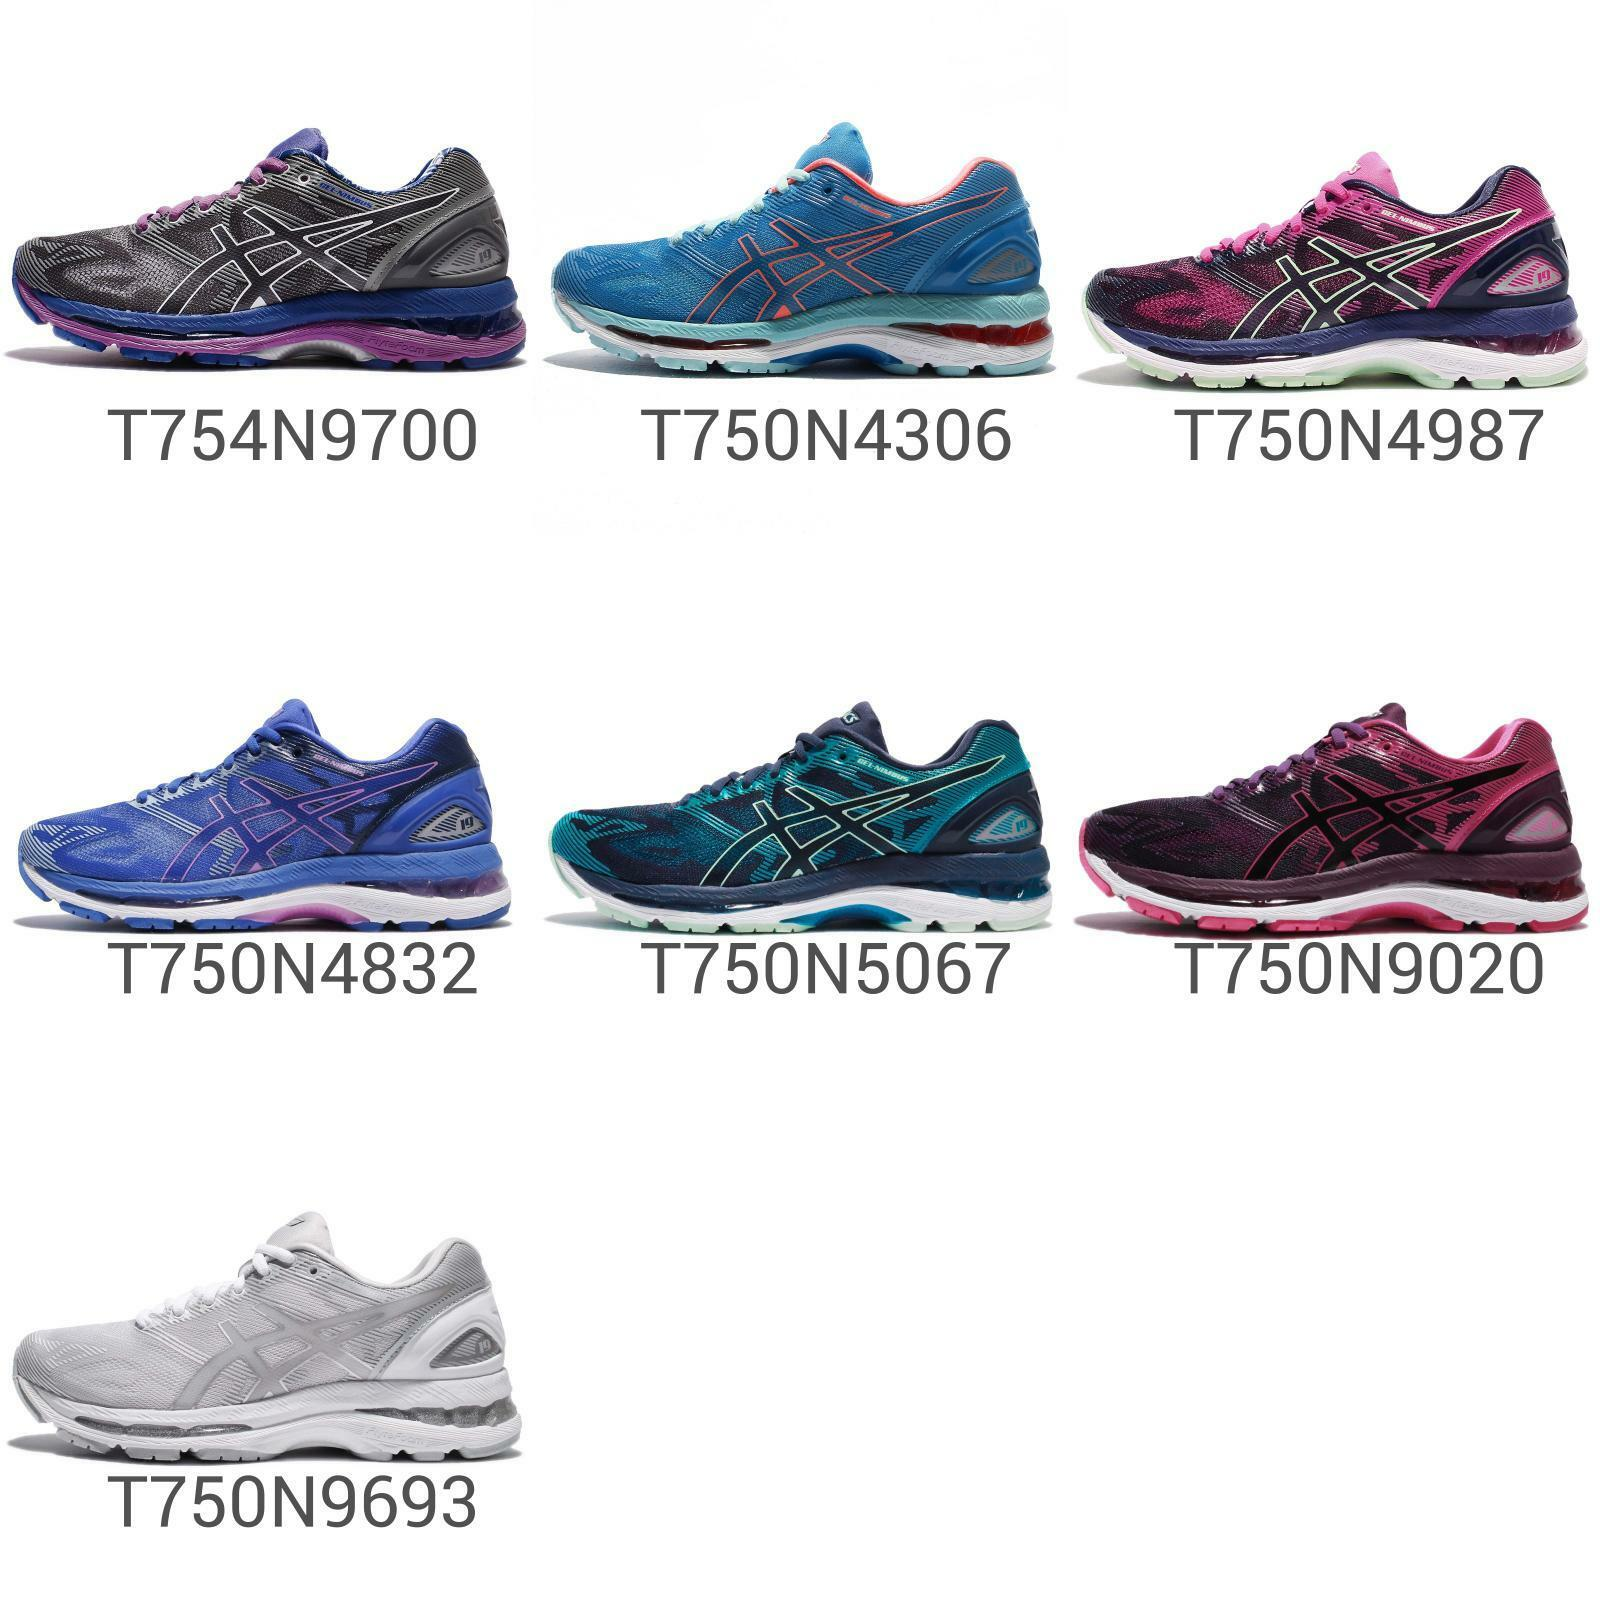 Asics Gel-Nimbus 19 FlyteFoam Gel Womens Cushion Running Shoes Runner Pick 1